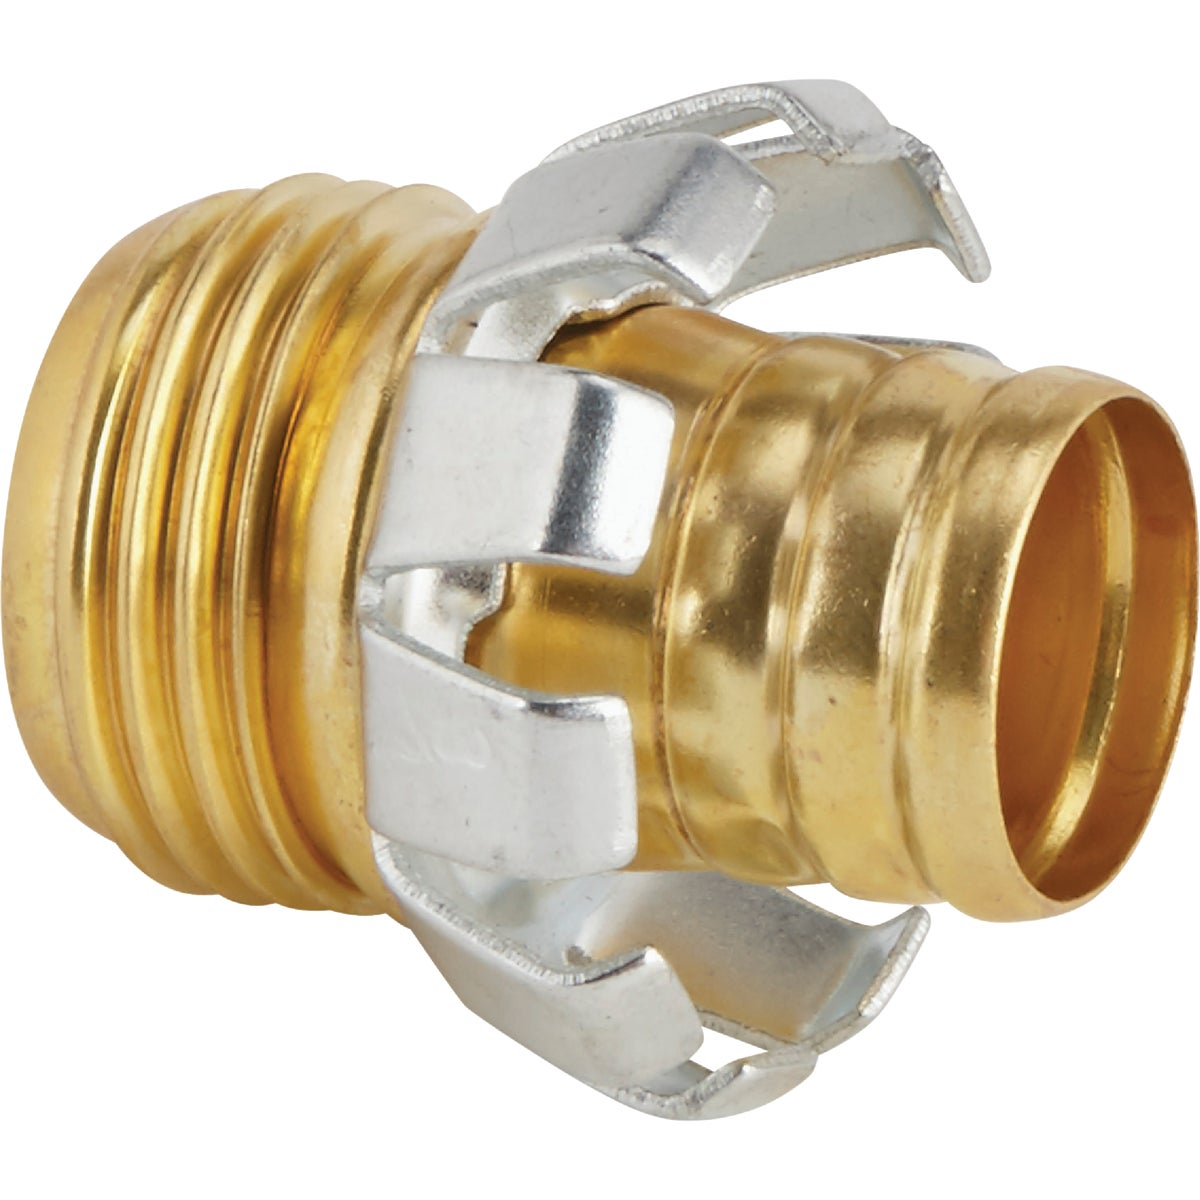 "3/4"" MALE BRASS HOSE END - DIBC34M by Bosch G W"